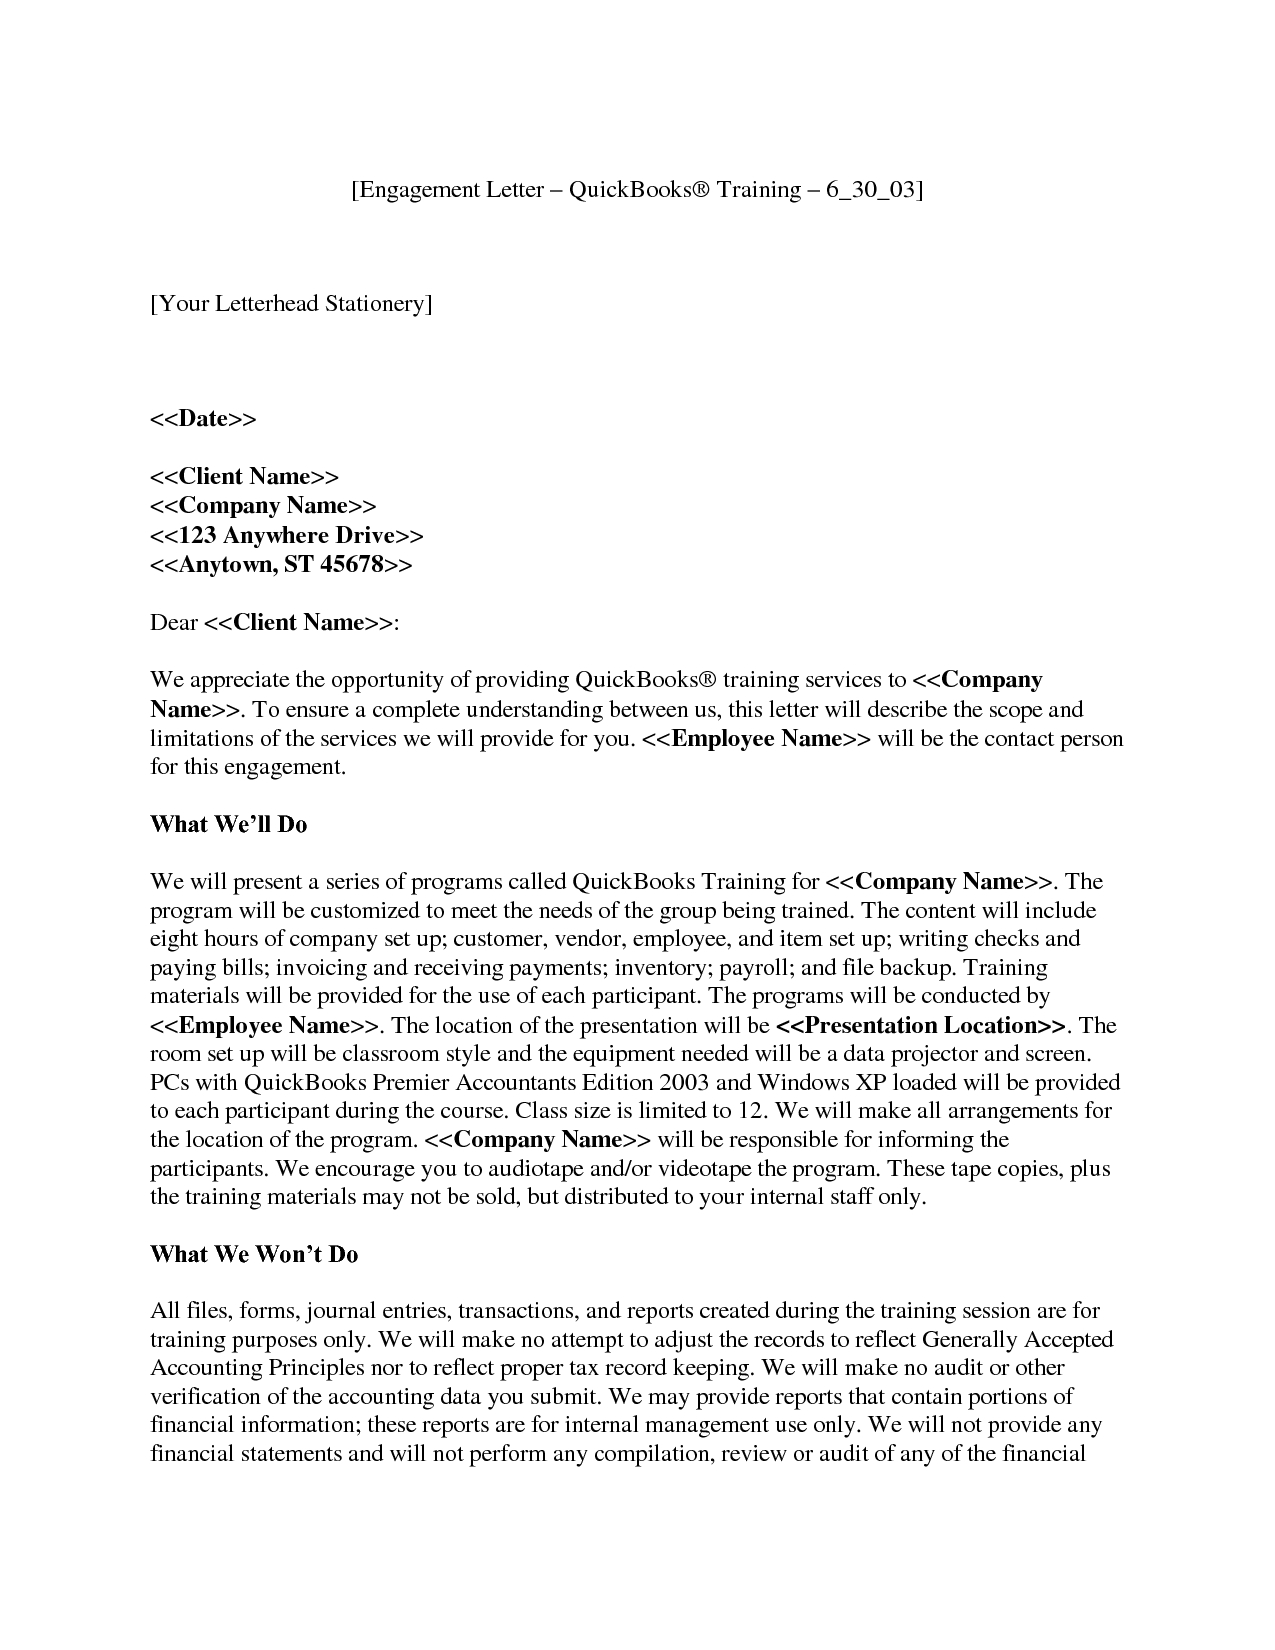 Tax Engagement Letter Template - How to Write A Letter Engagement Gallery Letter format formal